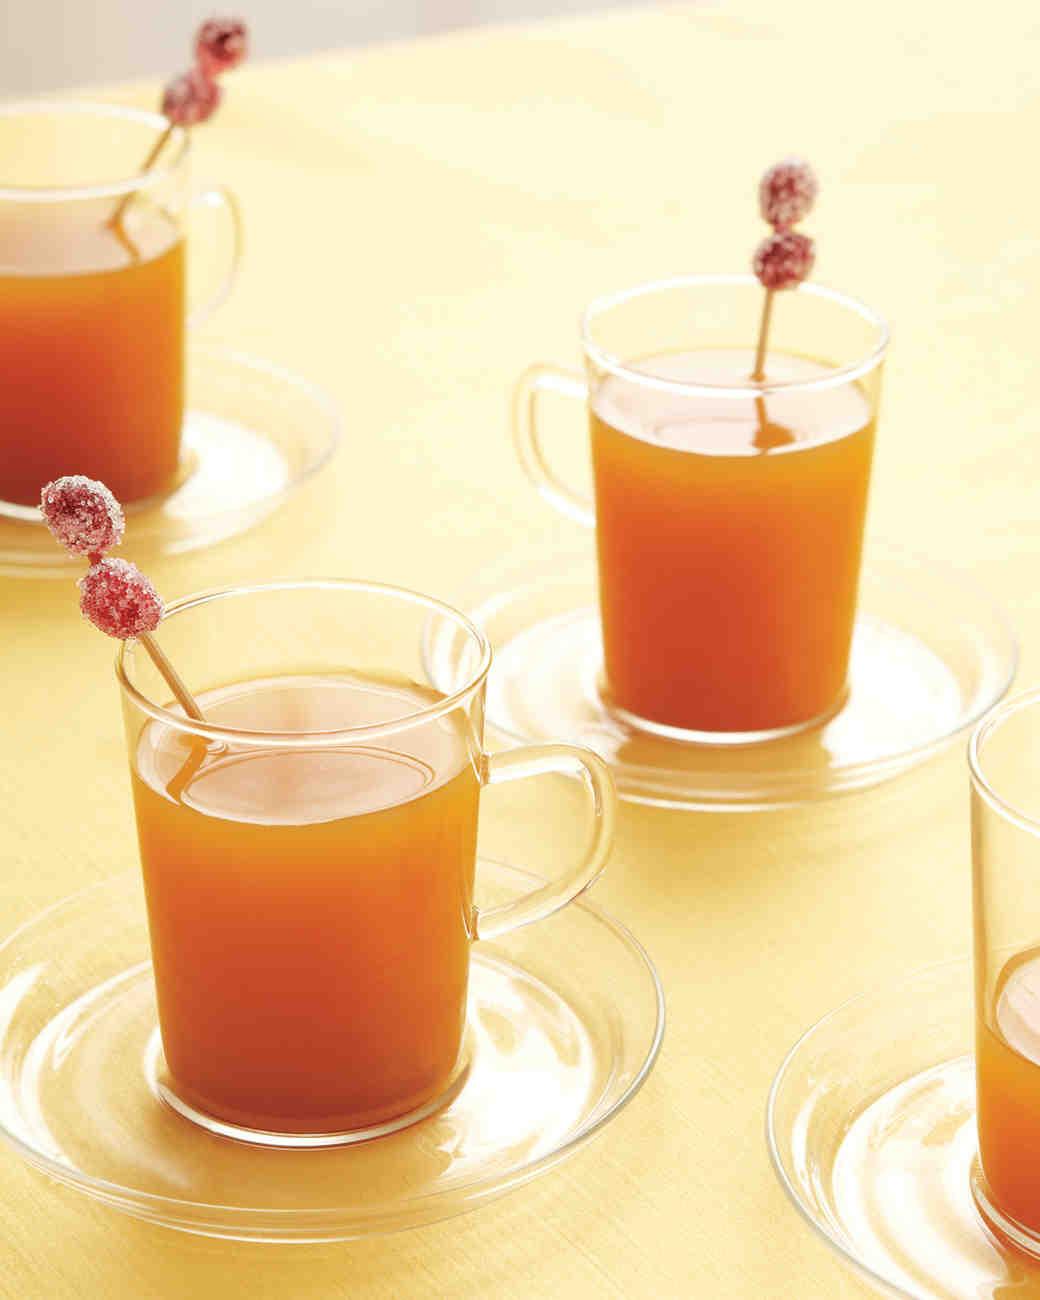 Hot Apple Cider with Sugared Cranberries